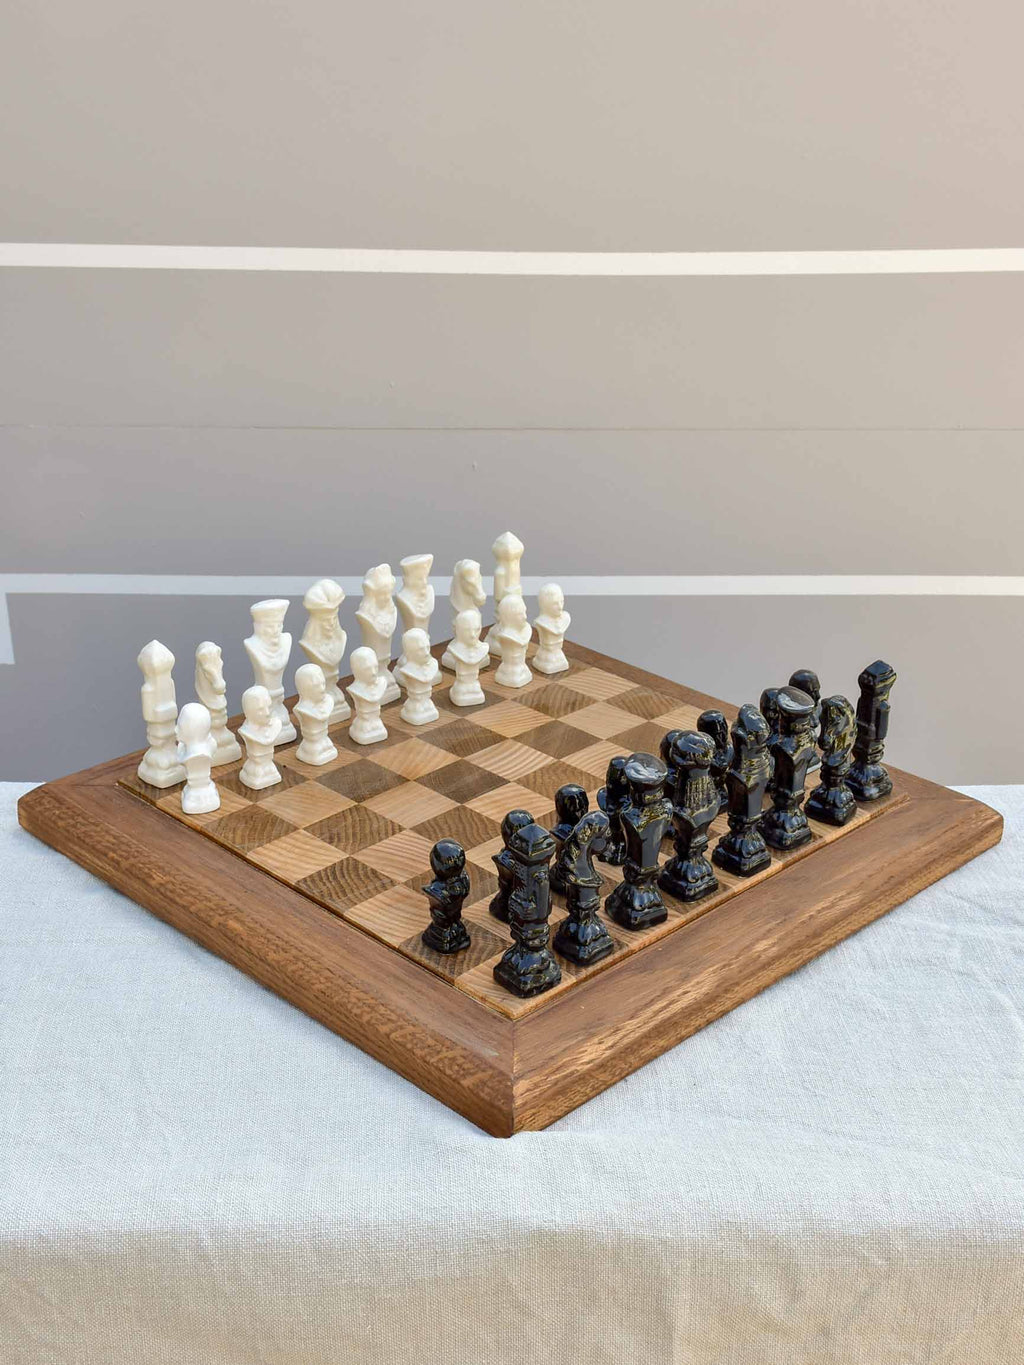 Vintage wooden chess board with porcelain pieces